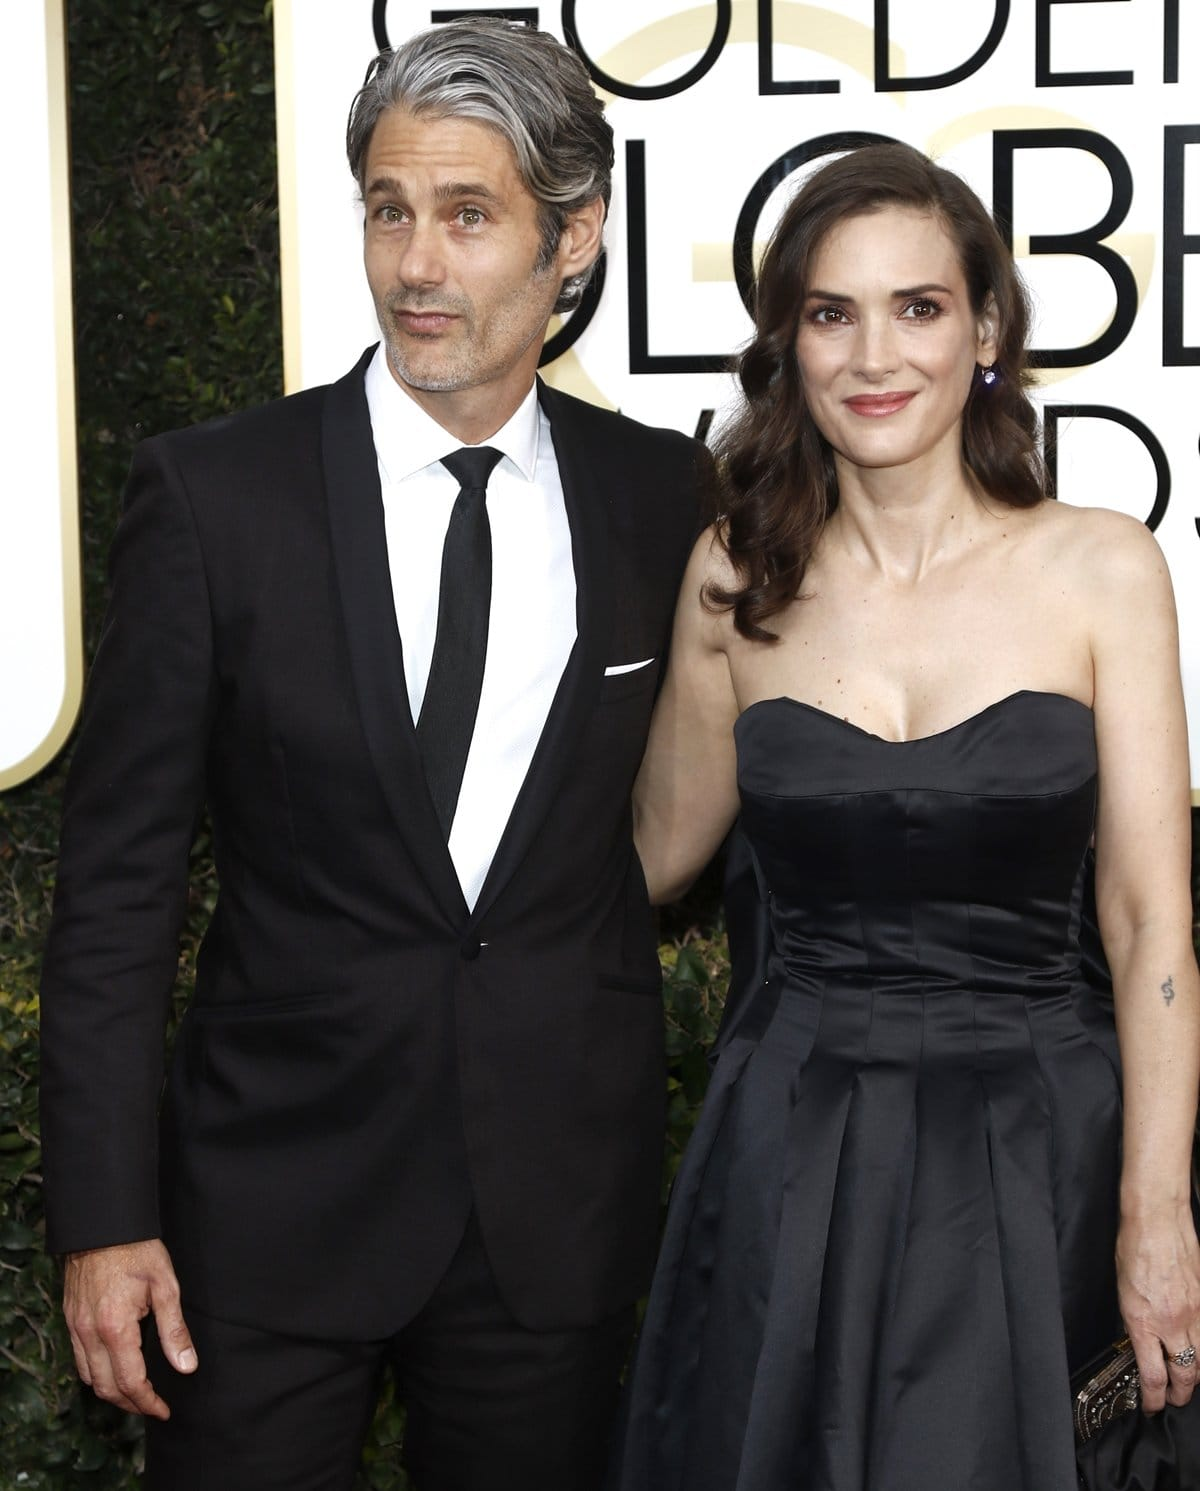 Fashion designer Scott Mackinlay Hahn and Winona Ryder have been together since 2011